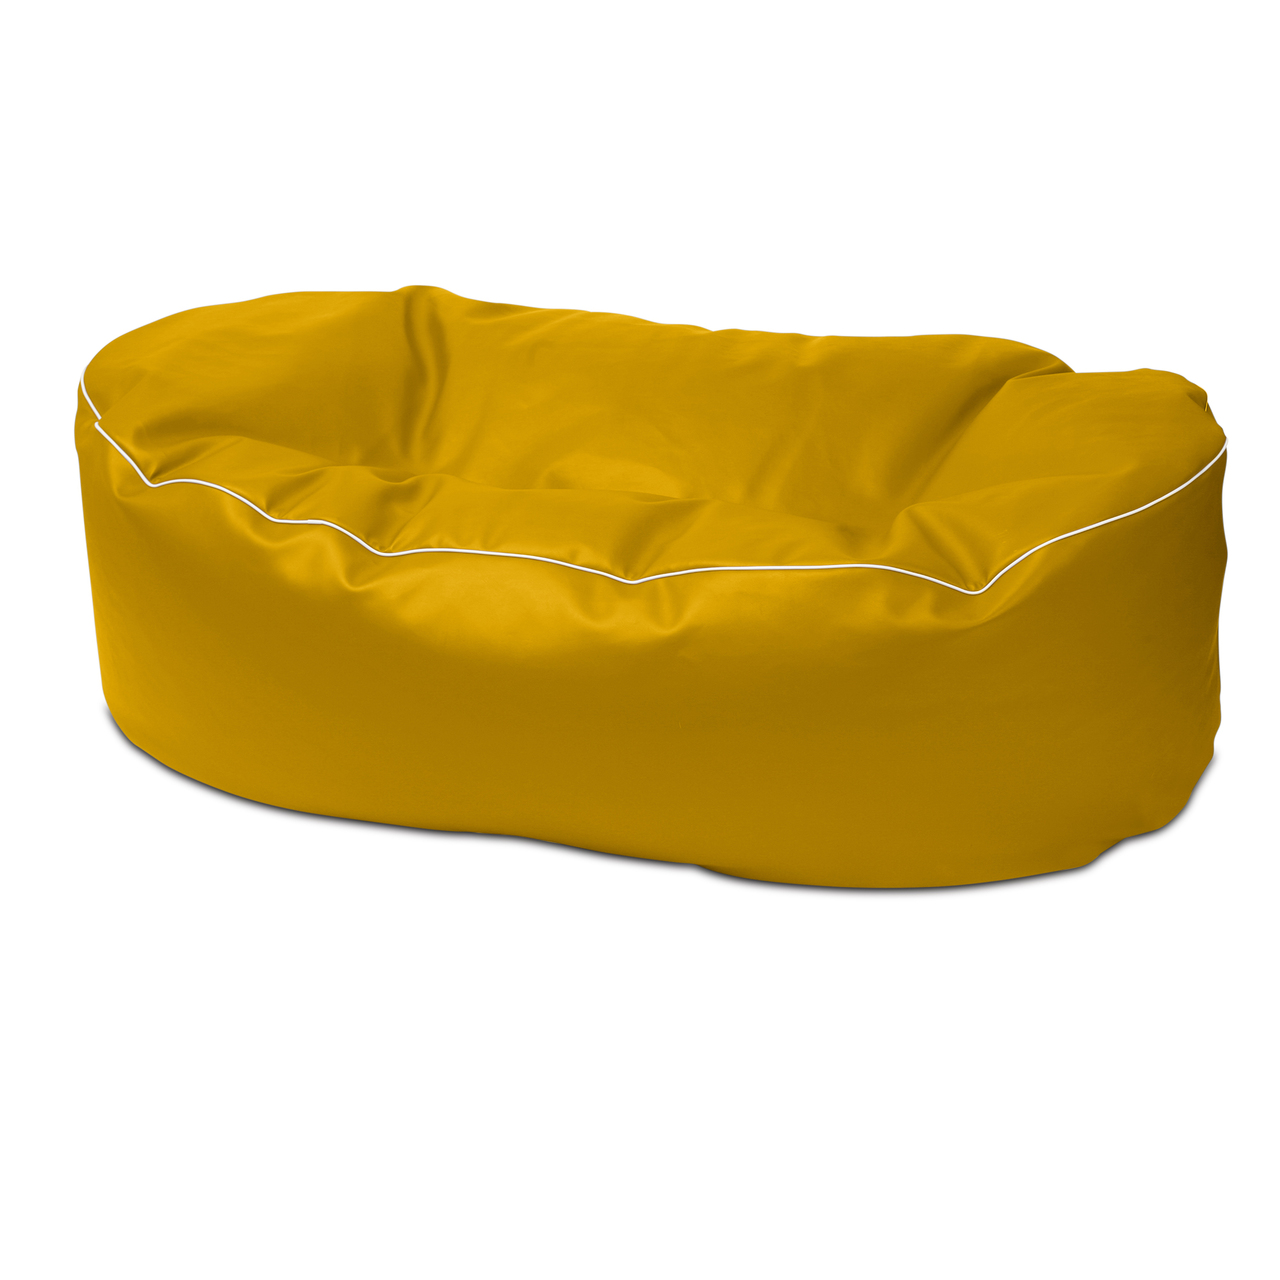 Retro 2m Couch in canary